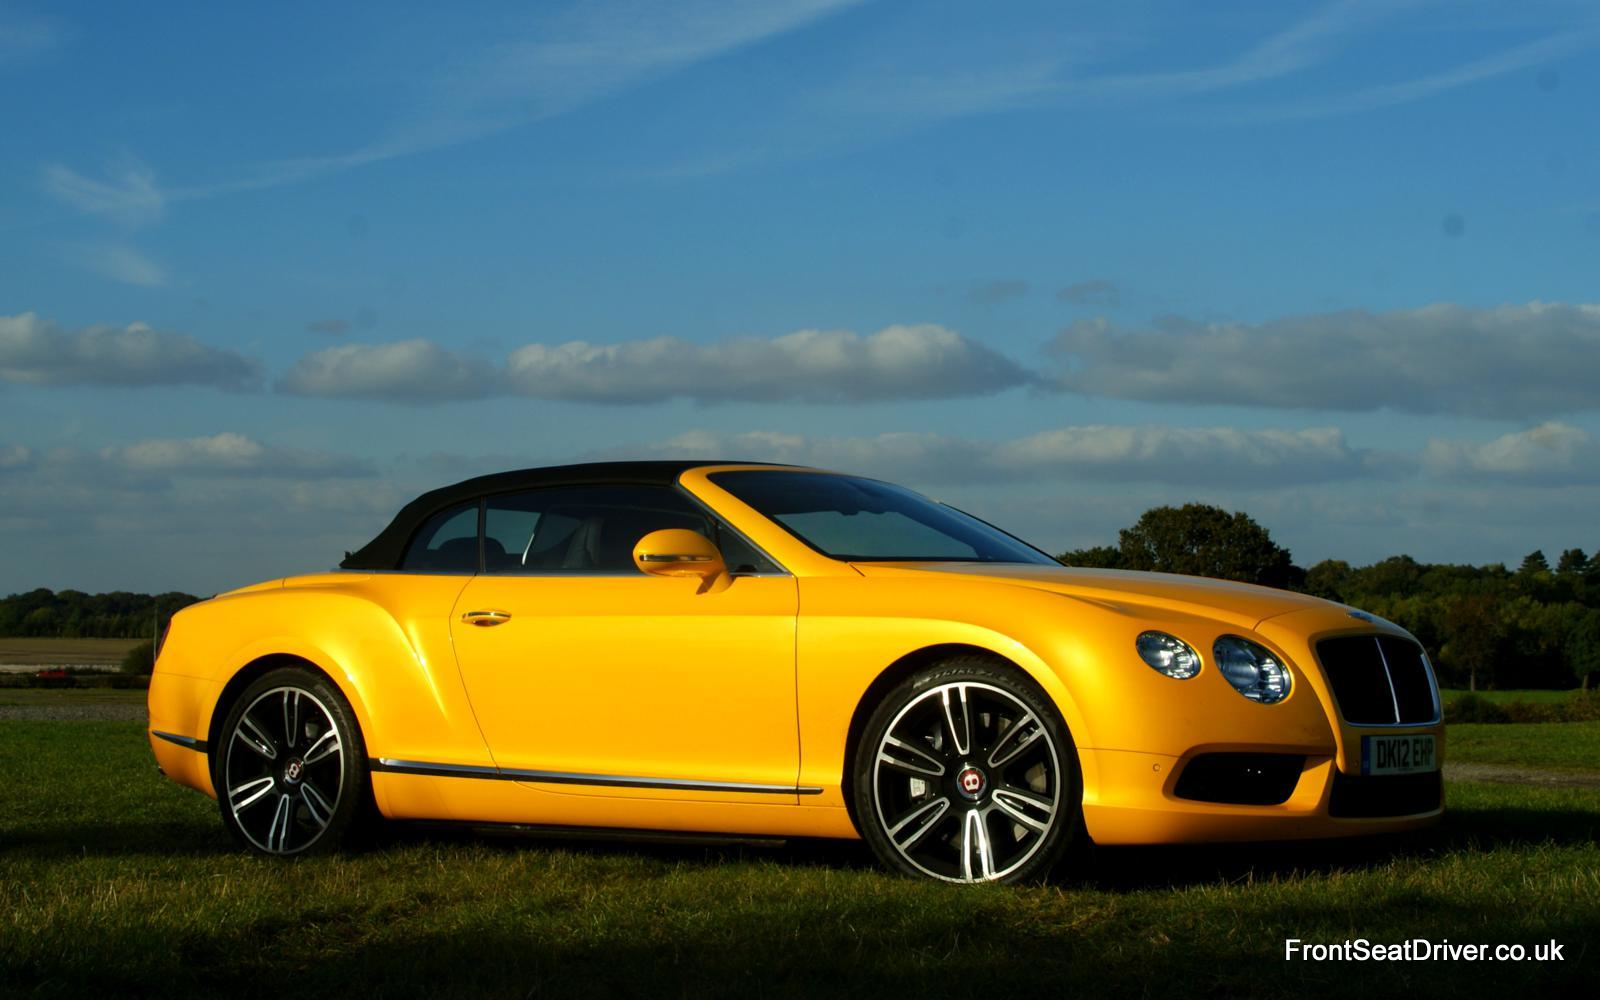 bentley continental gt v8 convertible 2012 front roof up. Black Bedroom Furniture Sets. Home Design Ideas